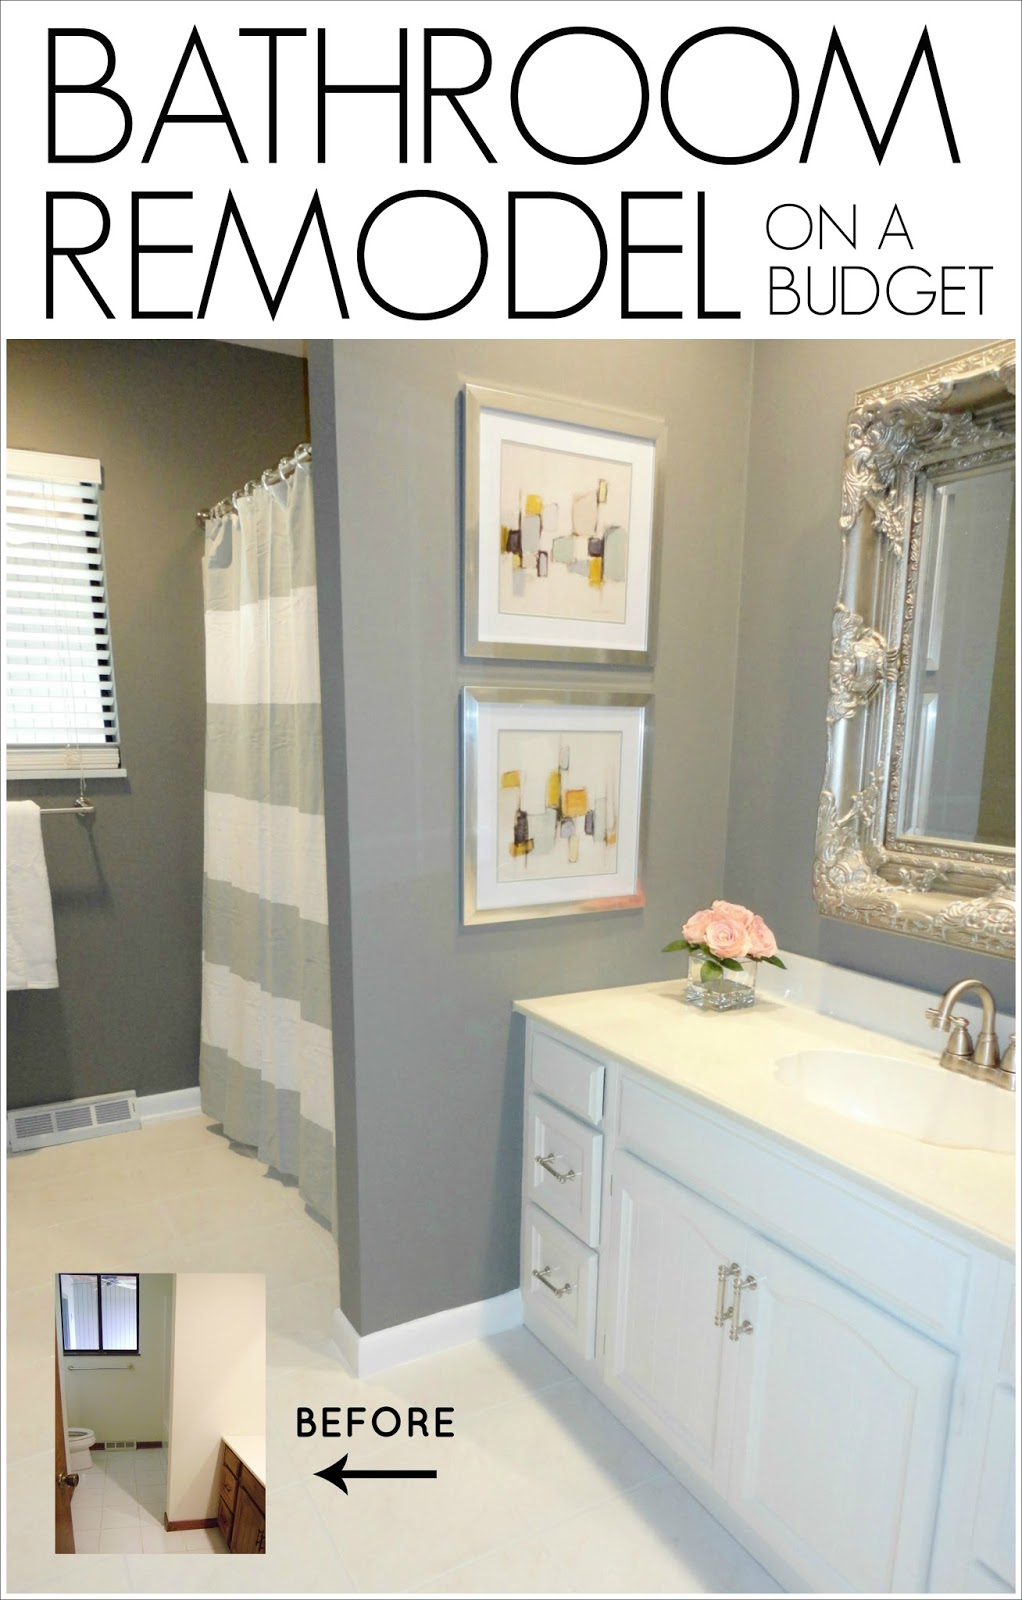 livelovediy diy bathroom remodel on a budget starting to put together bathroom ideas good storage